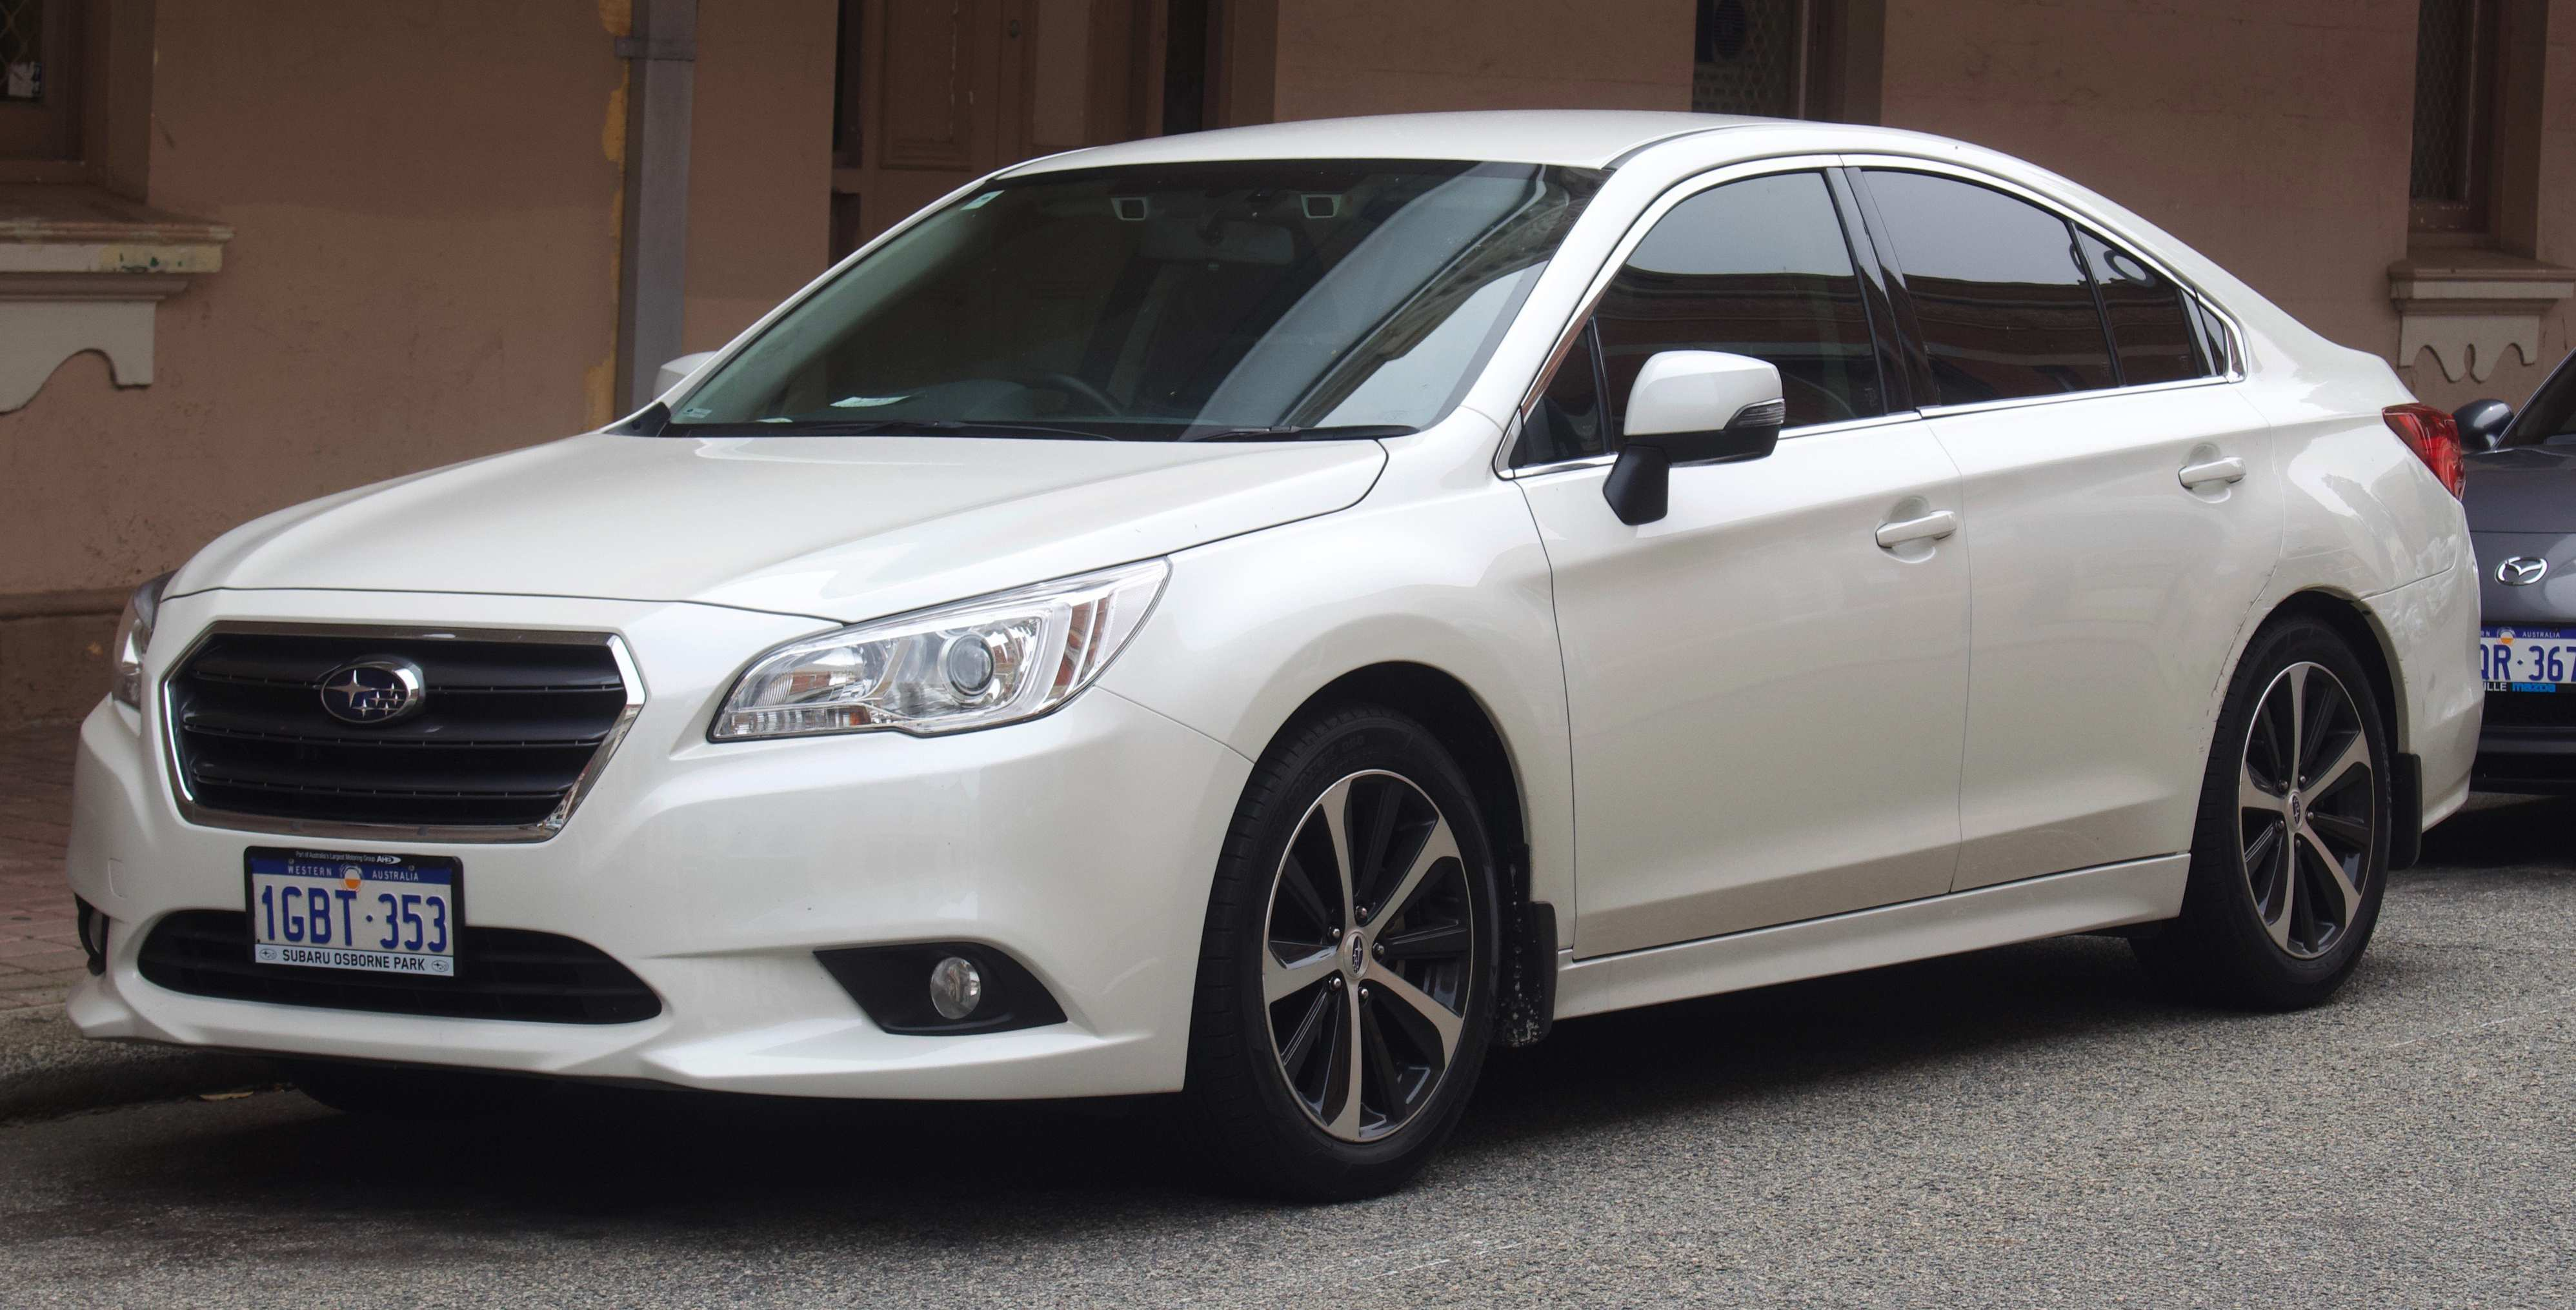 43 The Best 2020 Subaru Legacy Turbo Gt History